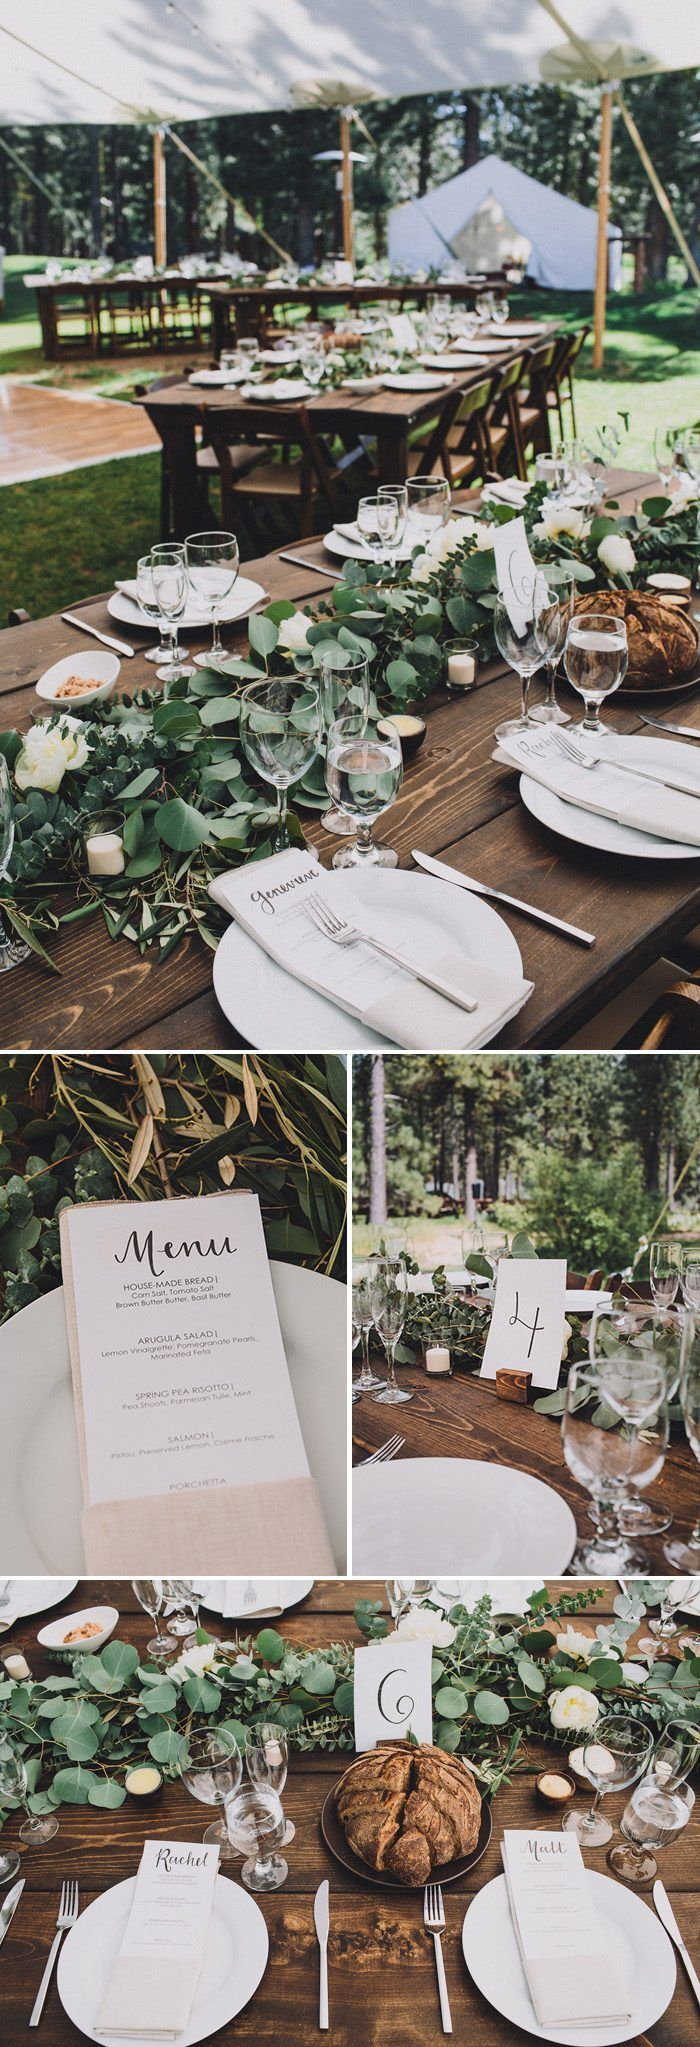 Gorgeous lush garland and dark wood tables match the organic + minimal